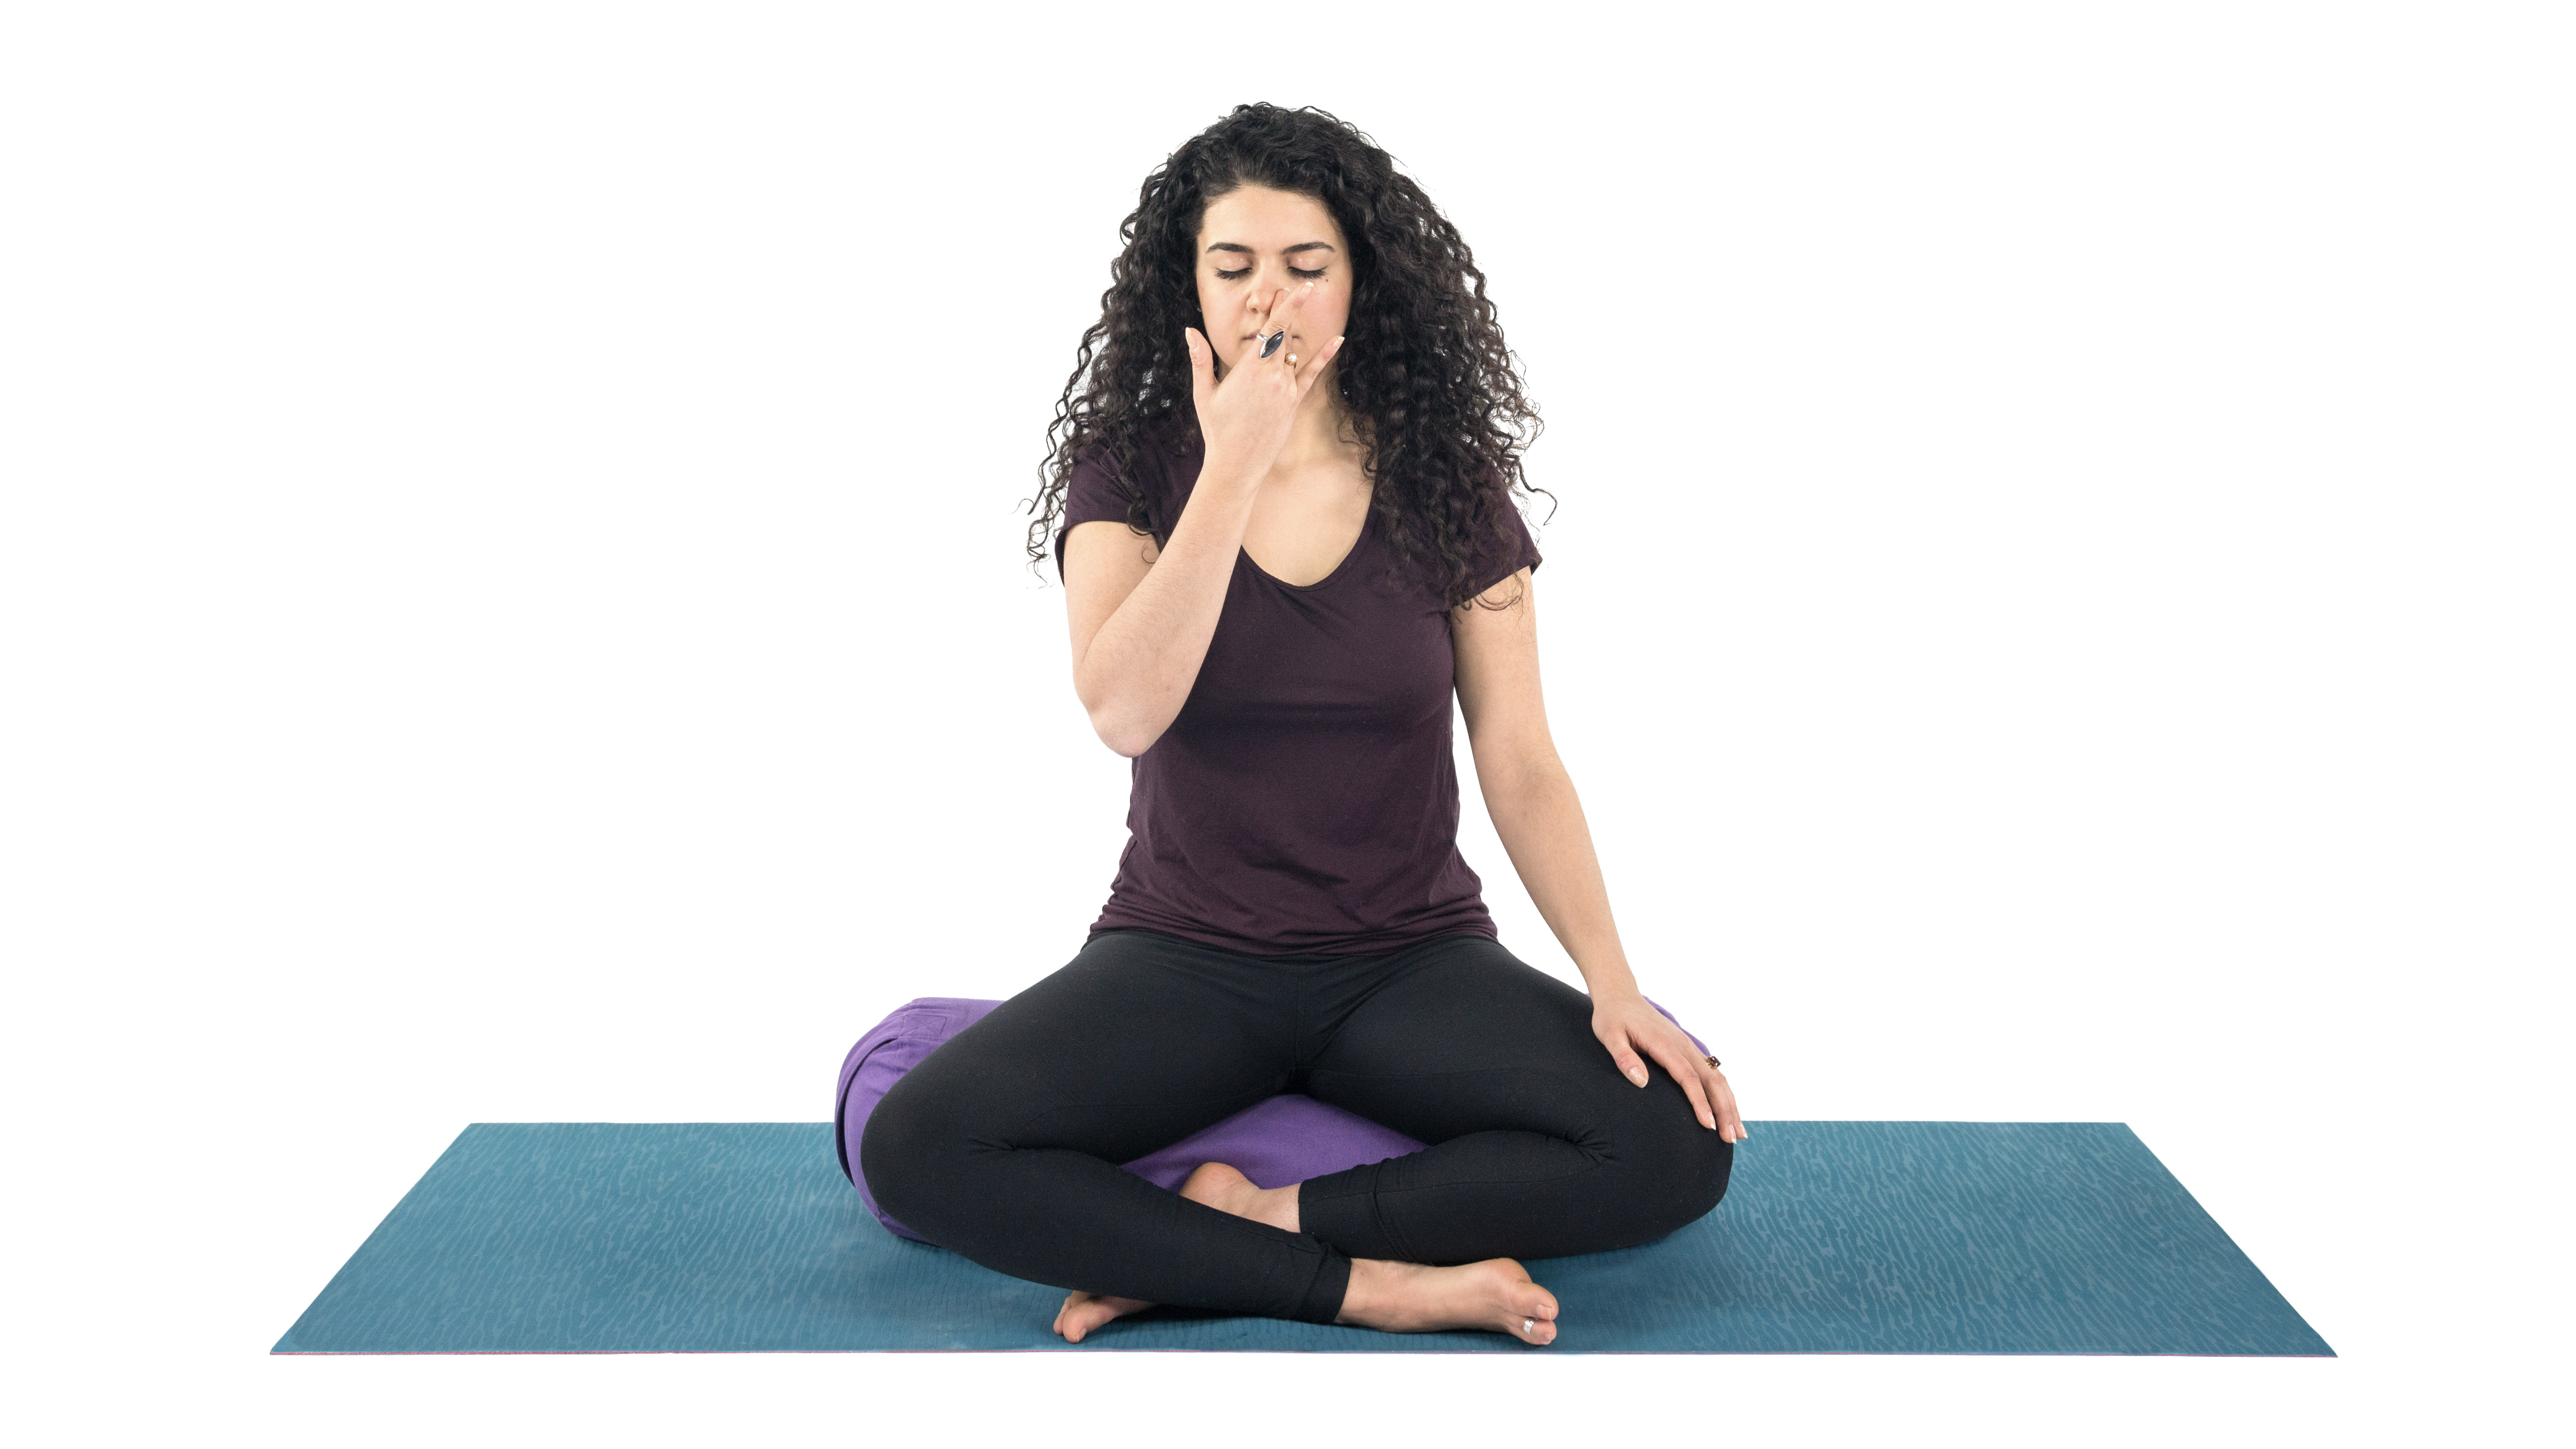 Pranayama, yoga and the breath, beginner's yoga, yoga for improved digestion, yoga for stress relief